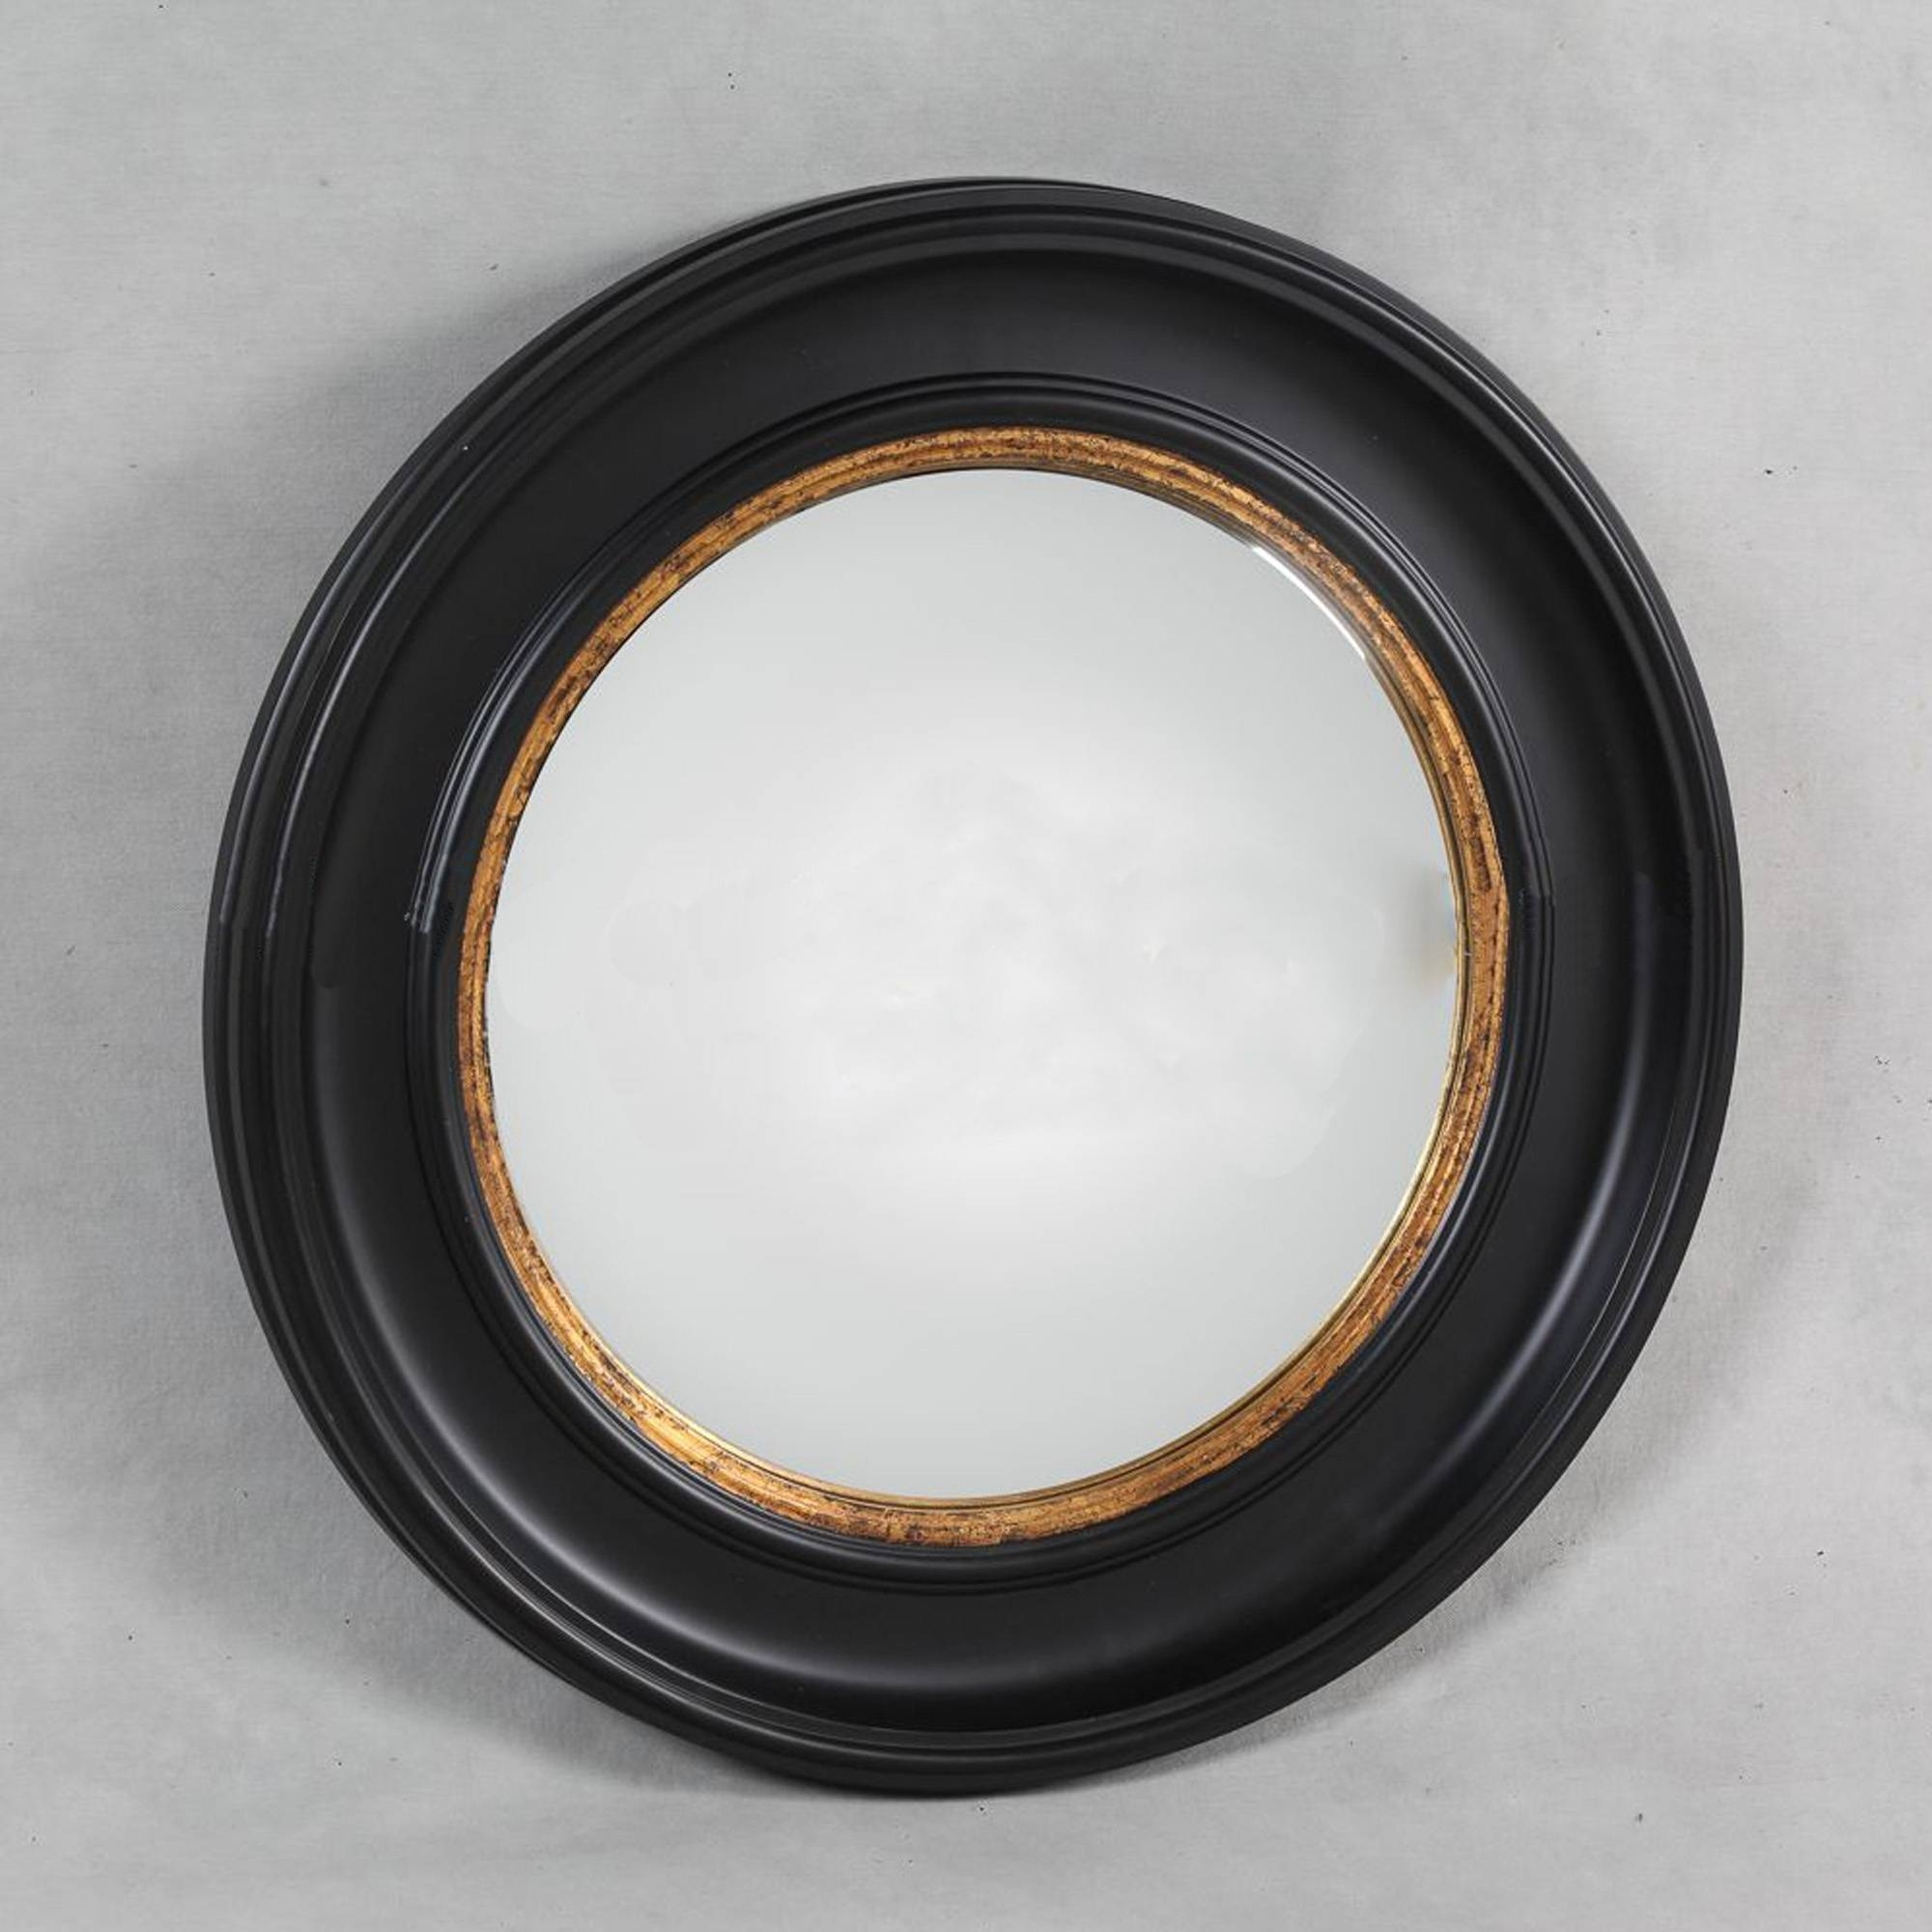 Deep Black Framed Convex Mirror | Decorative Coloured Mirrors in Black Convex Mirrors (Image 4 of 25)